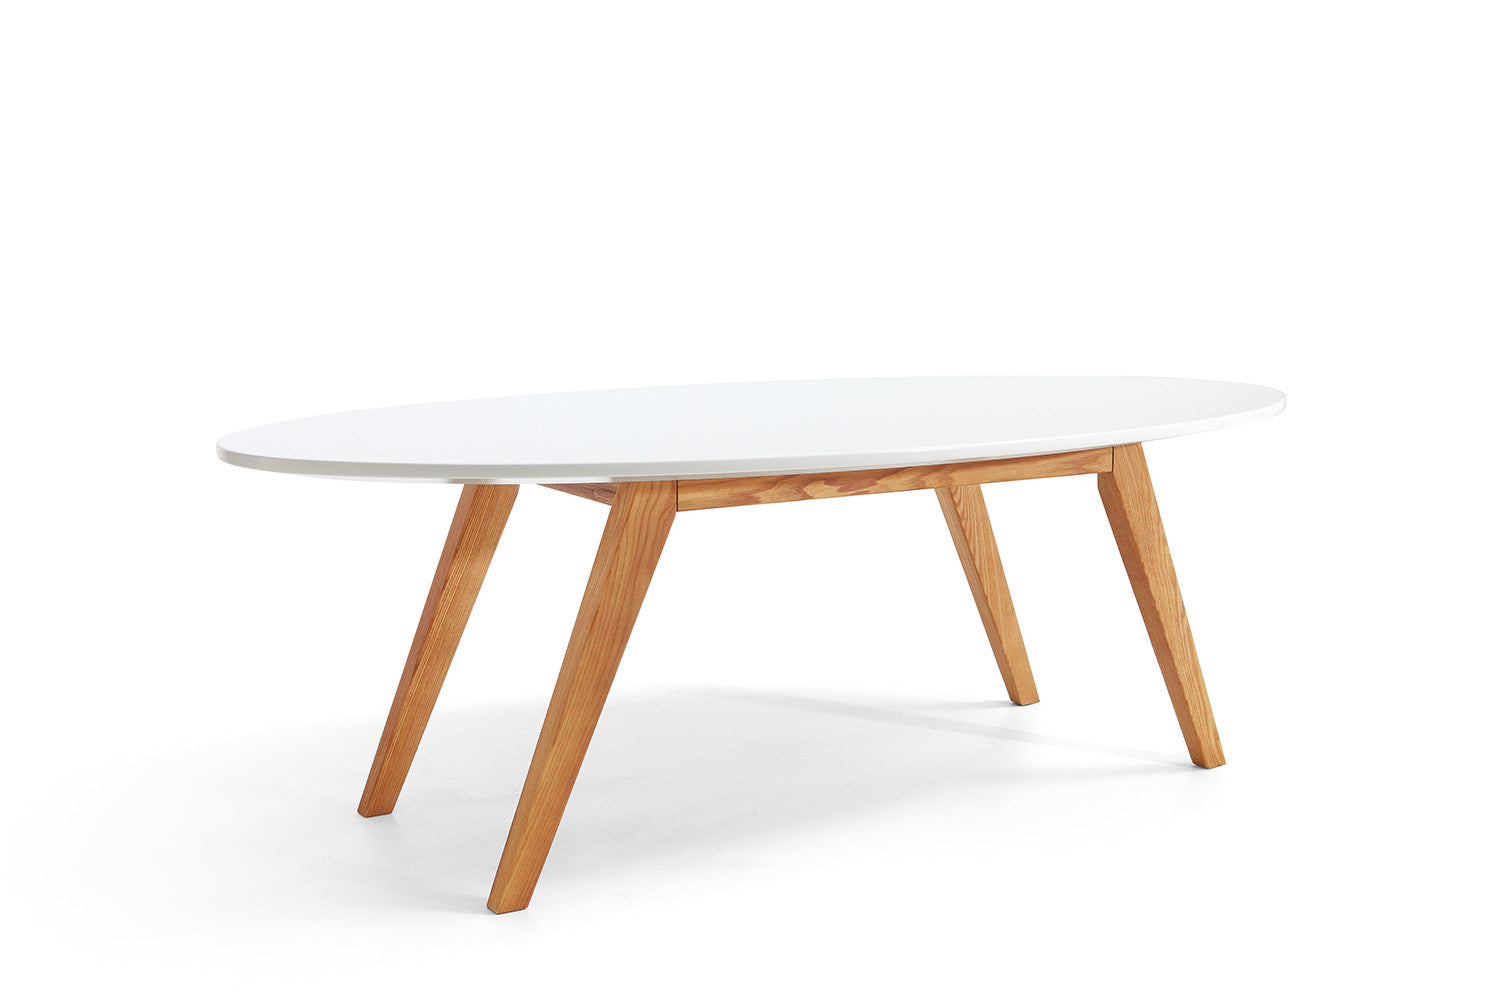 Table basse design en bois blanche b le dewarens for Table basse bois design